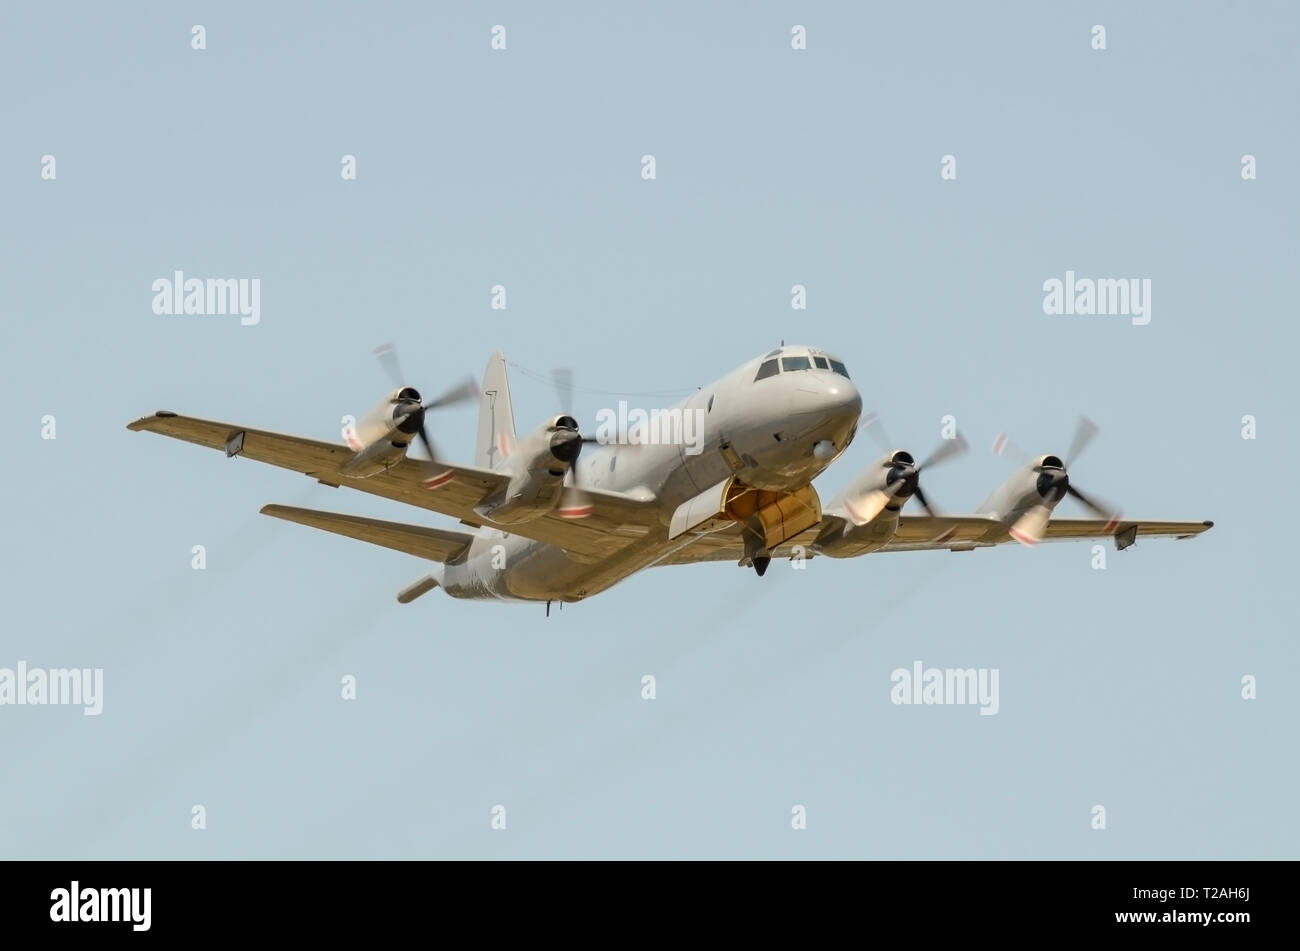 royal-new-zealand-air-force-lockheed-p-3-orion-plane-upgraded-by-l-3-communications-canada-and-now-designated-as-p-3k2-maritime-patrol-aircraft-5sqn-T2AH6J.jpg